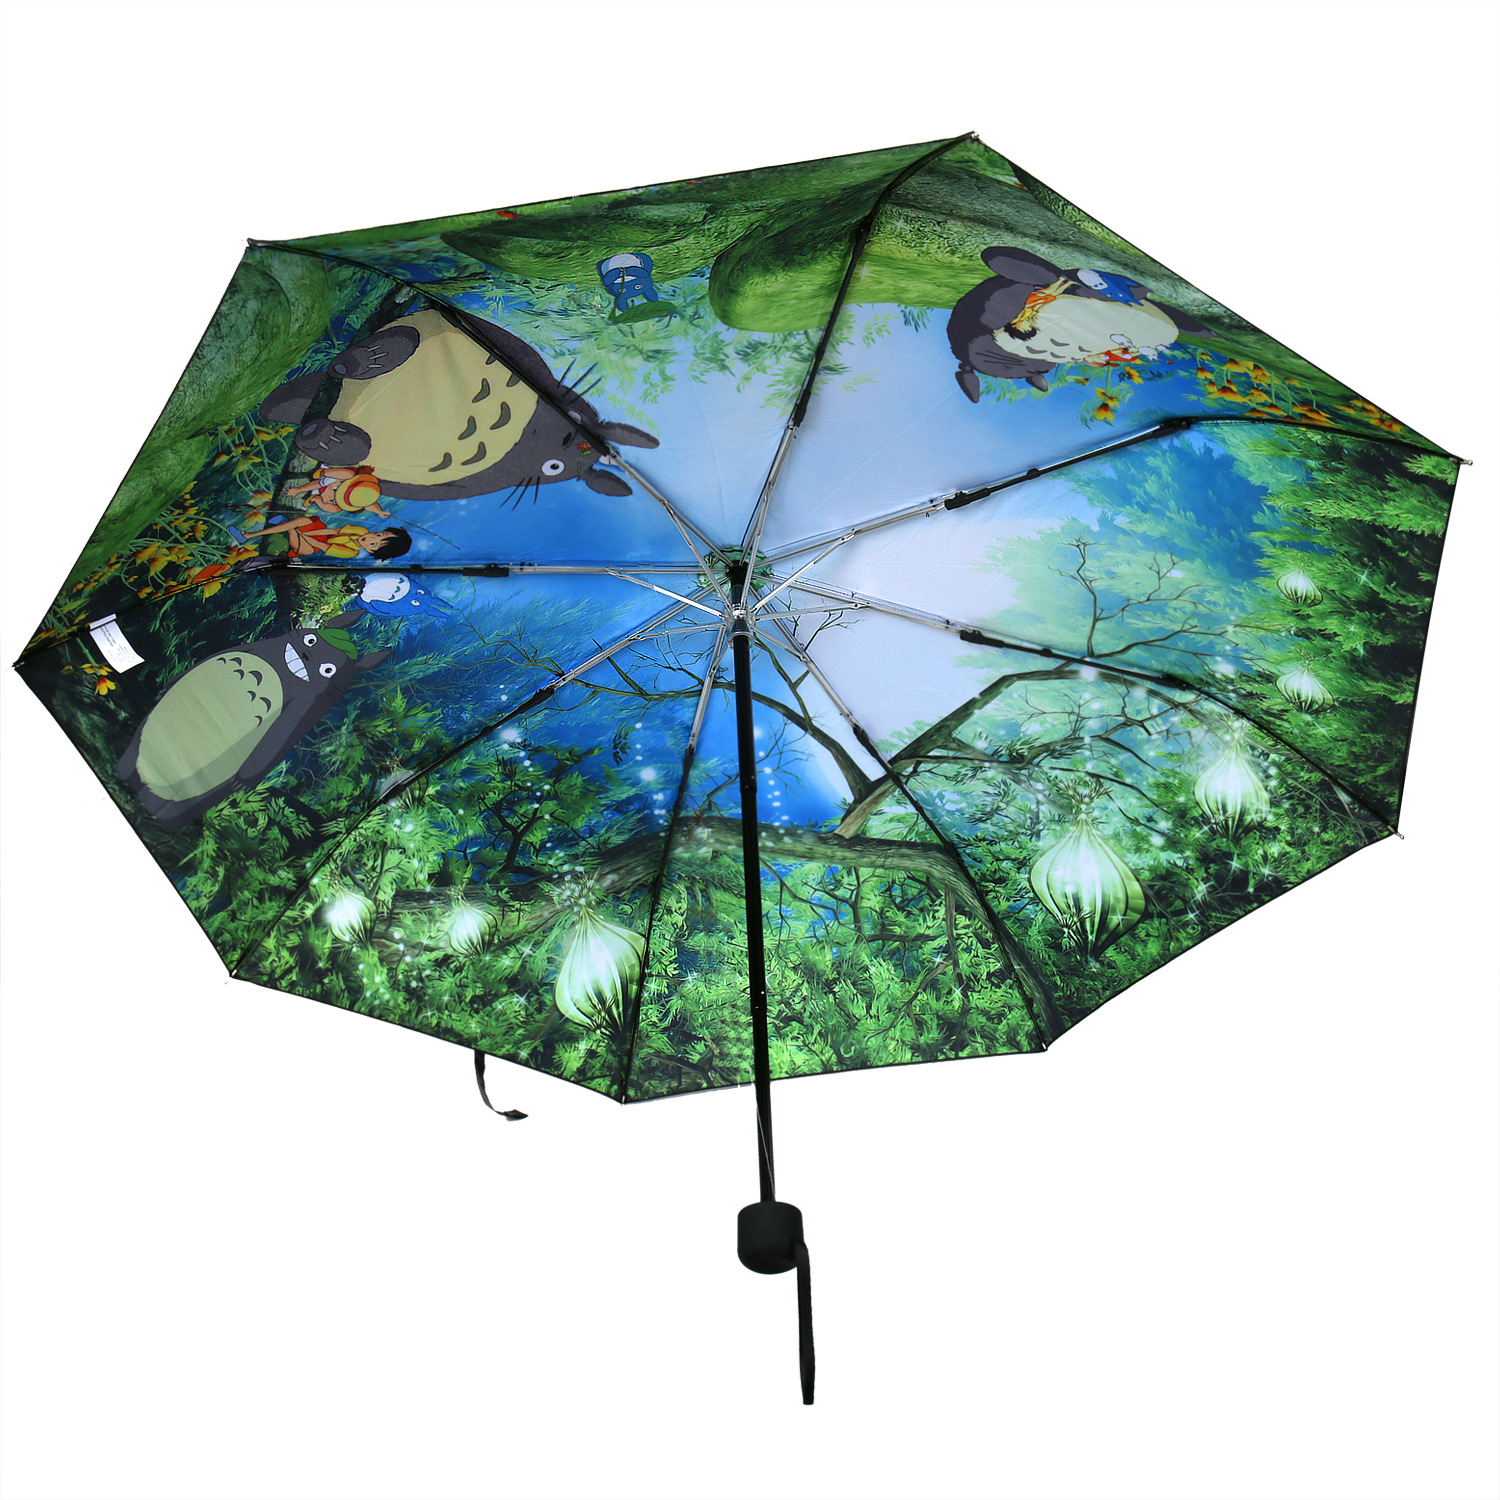 2017 Totoro Umbrella Anime Studio Ghibli Umbrellas Rain ...